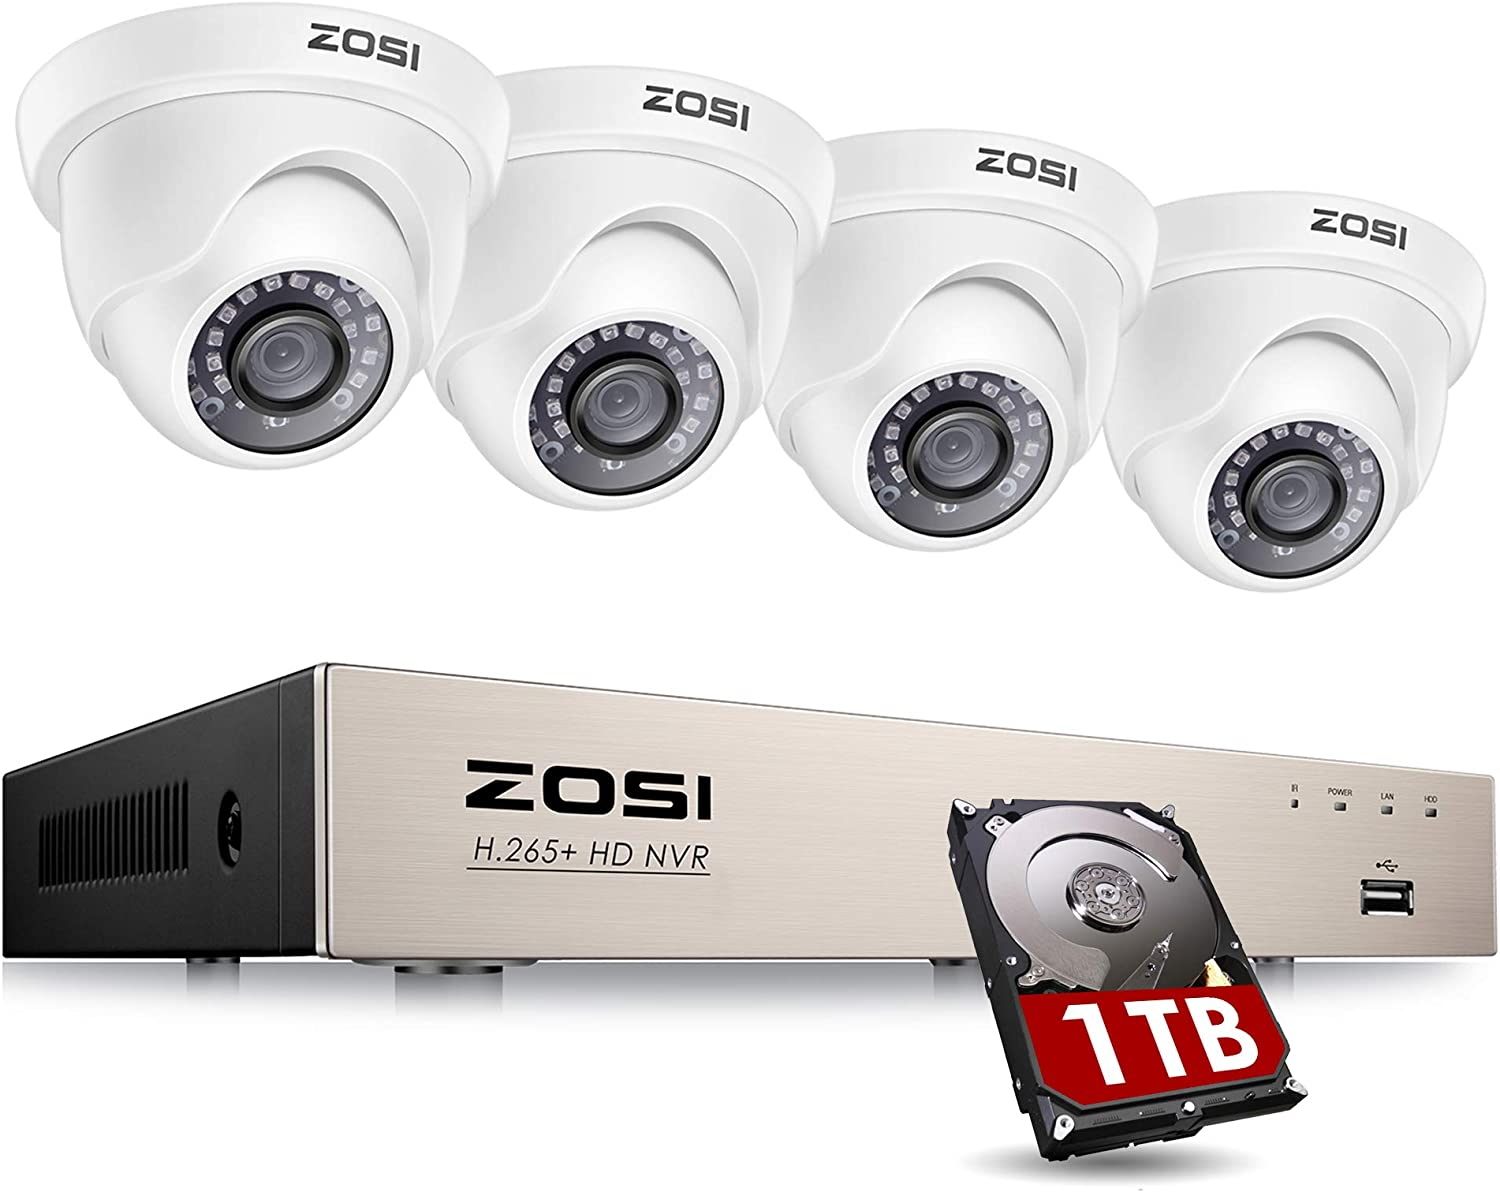 ZOSI 8CH PoE Home Security Camera System with 1TB Hard Drive,H.265+ 8 Channel 5MP NVR Recorder and 4pcs Wired 1080P Outdoor Indoor PoE IP Dome Cameras with Night Vision, Motion Alert, Remote Access